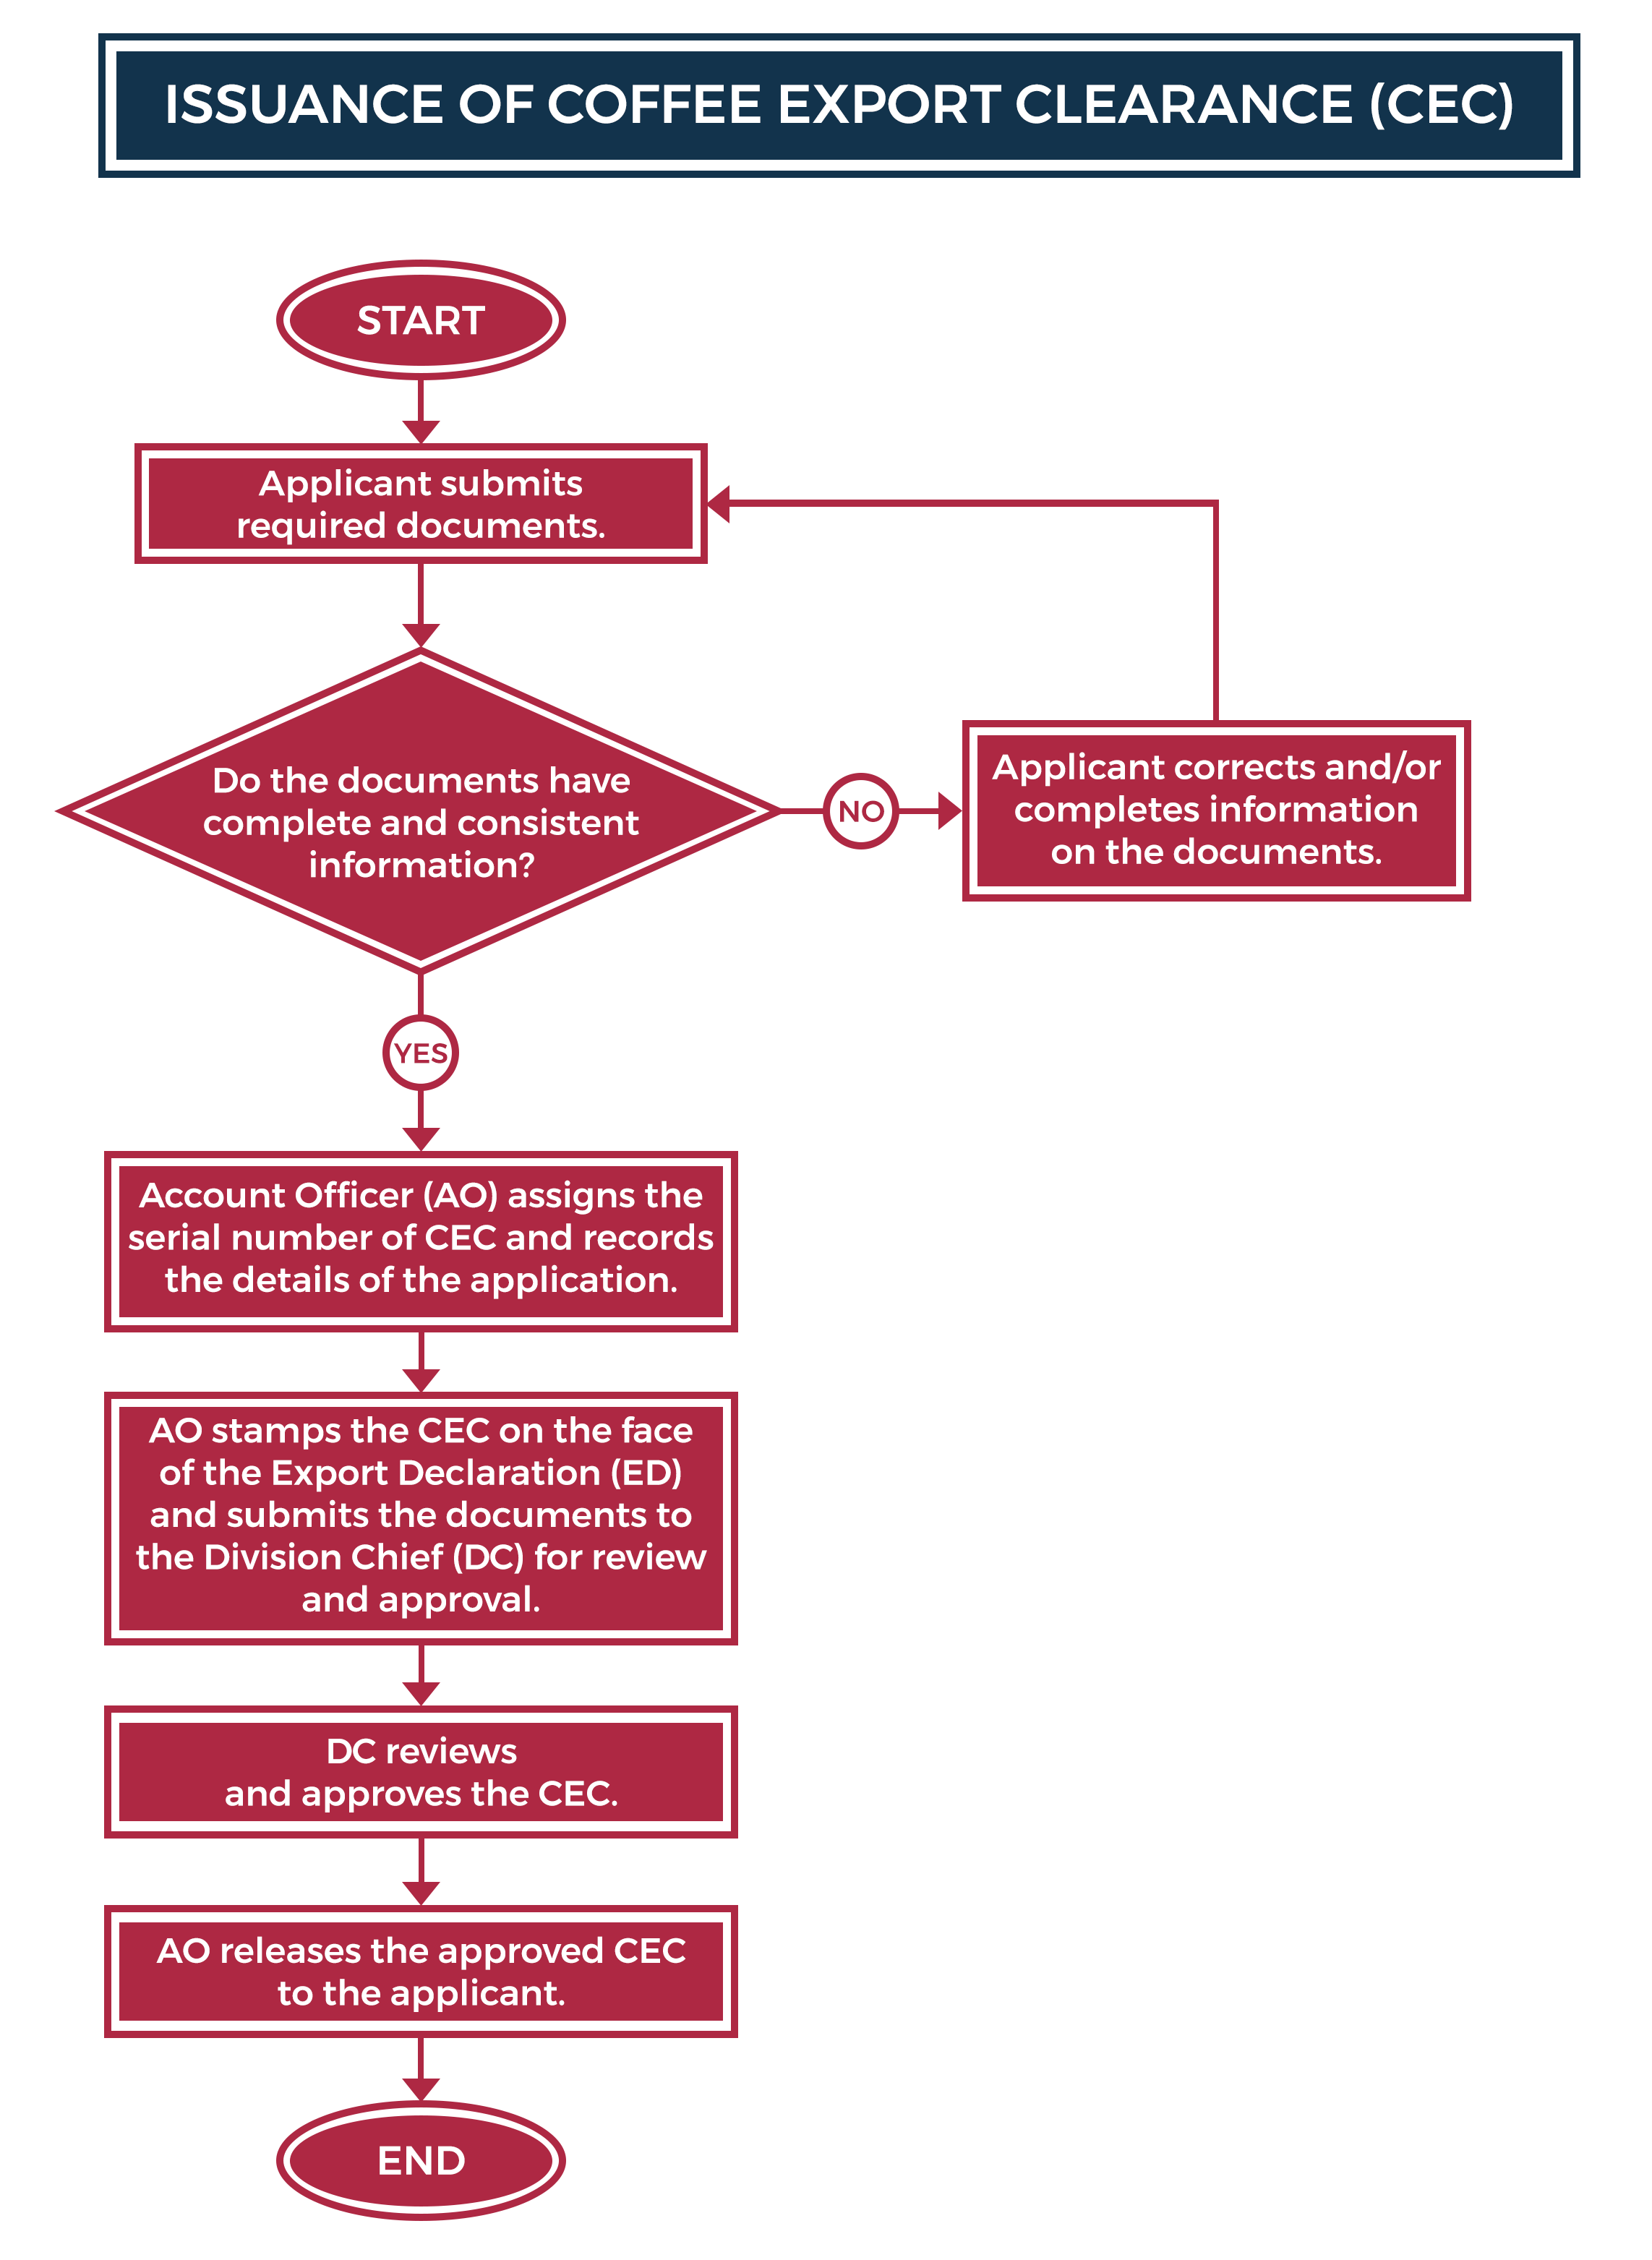 Issuance of Coffee Export Clearance Flowchart